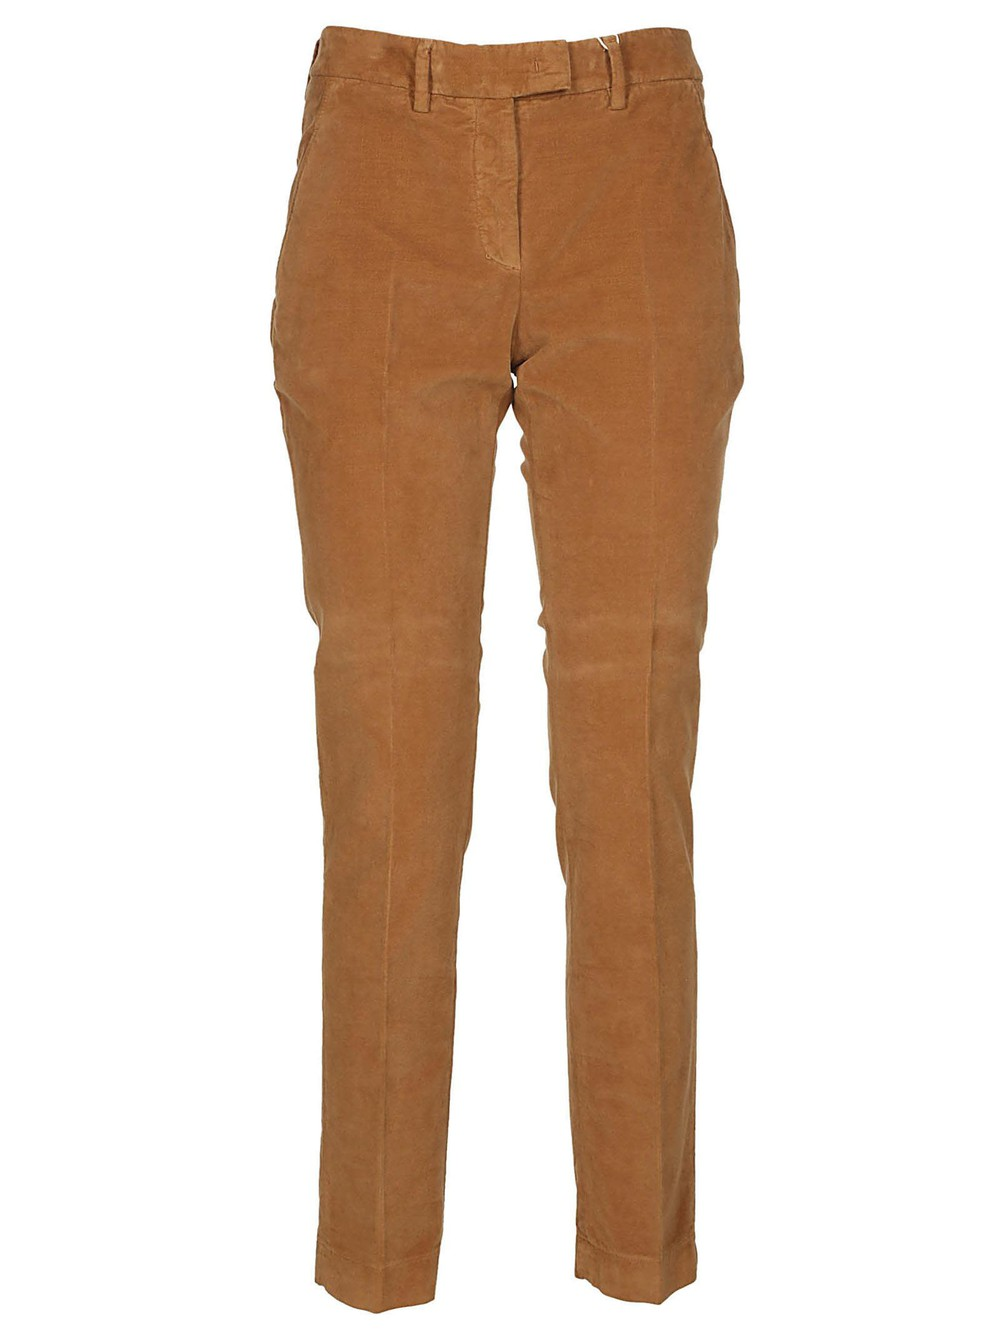 Incotex Skinny Trousers in brown